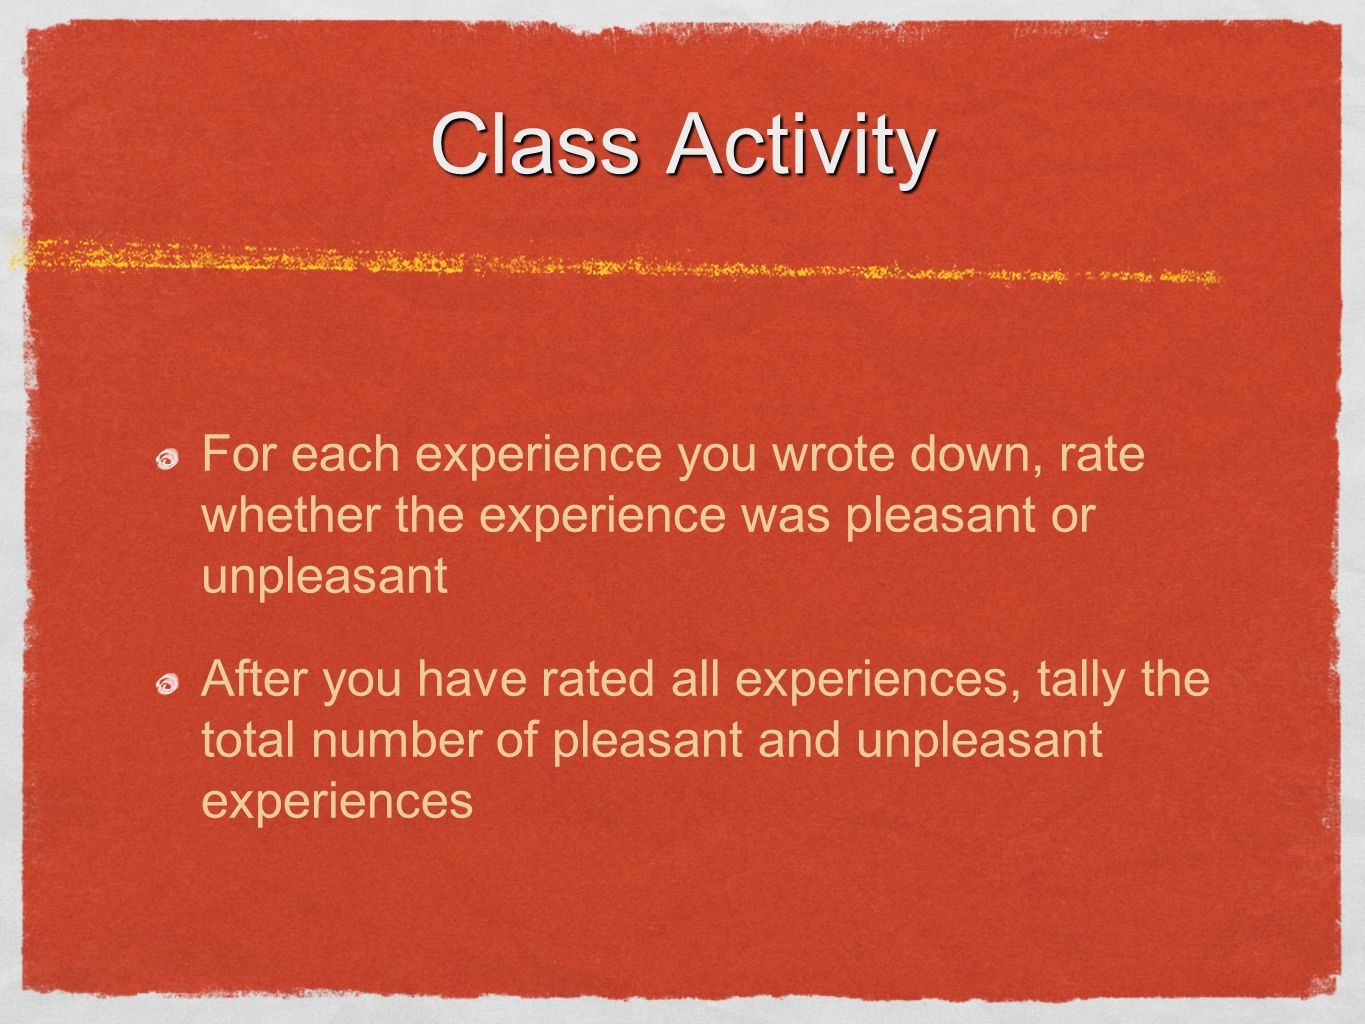 Class Activity For each experience you wrote down, rate whether the experience was pleasant or unpleasant After you have rated all experiences, tally